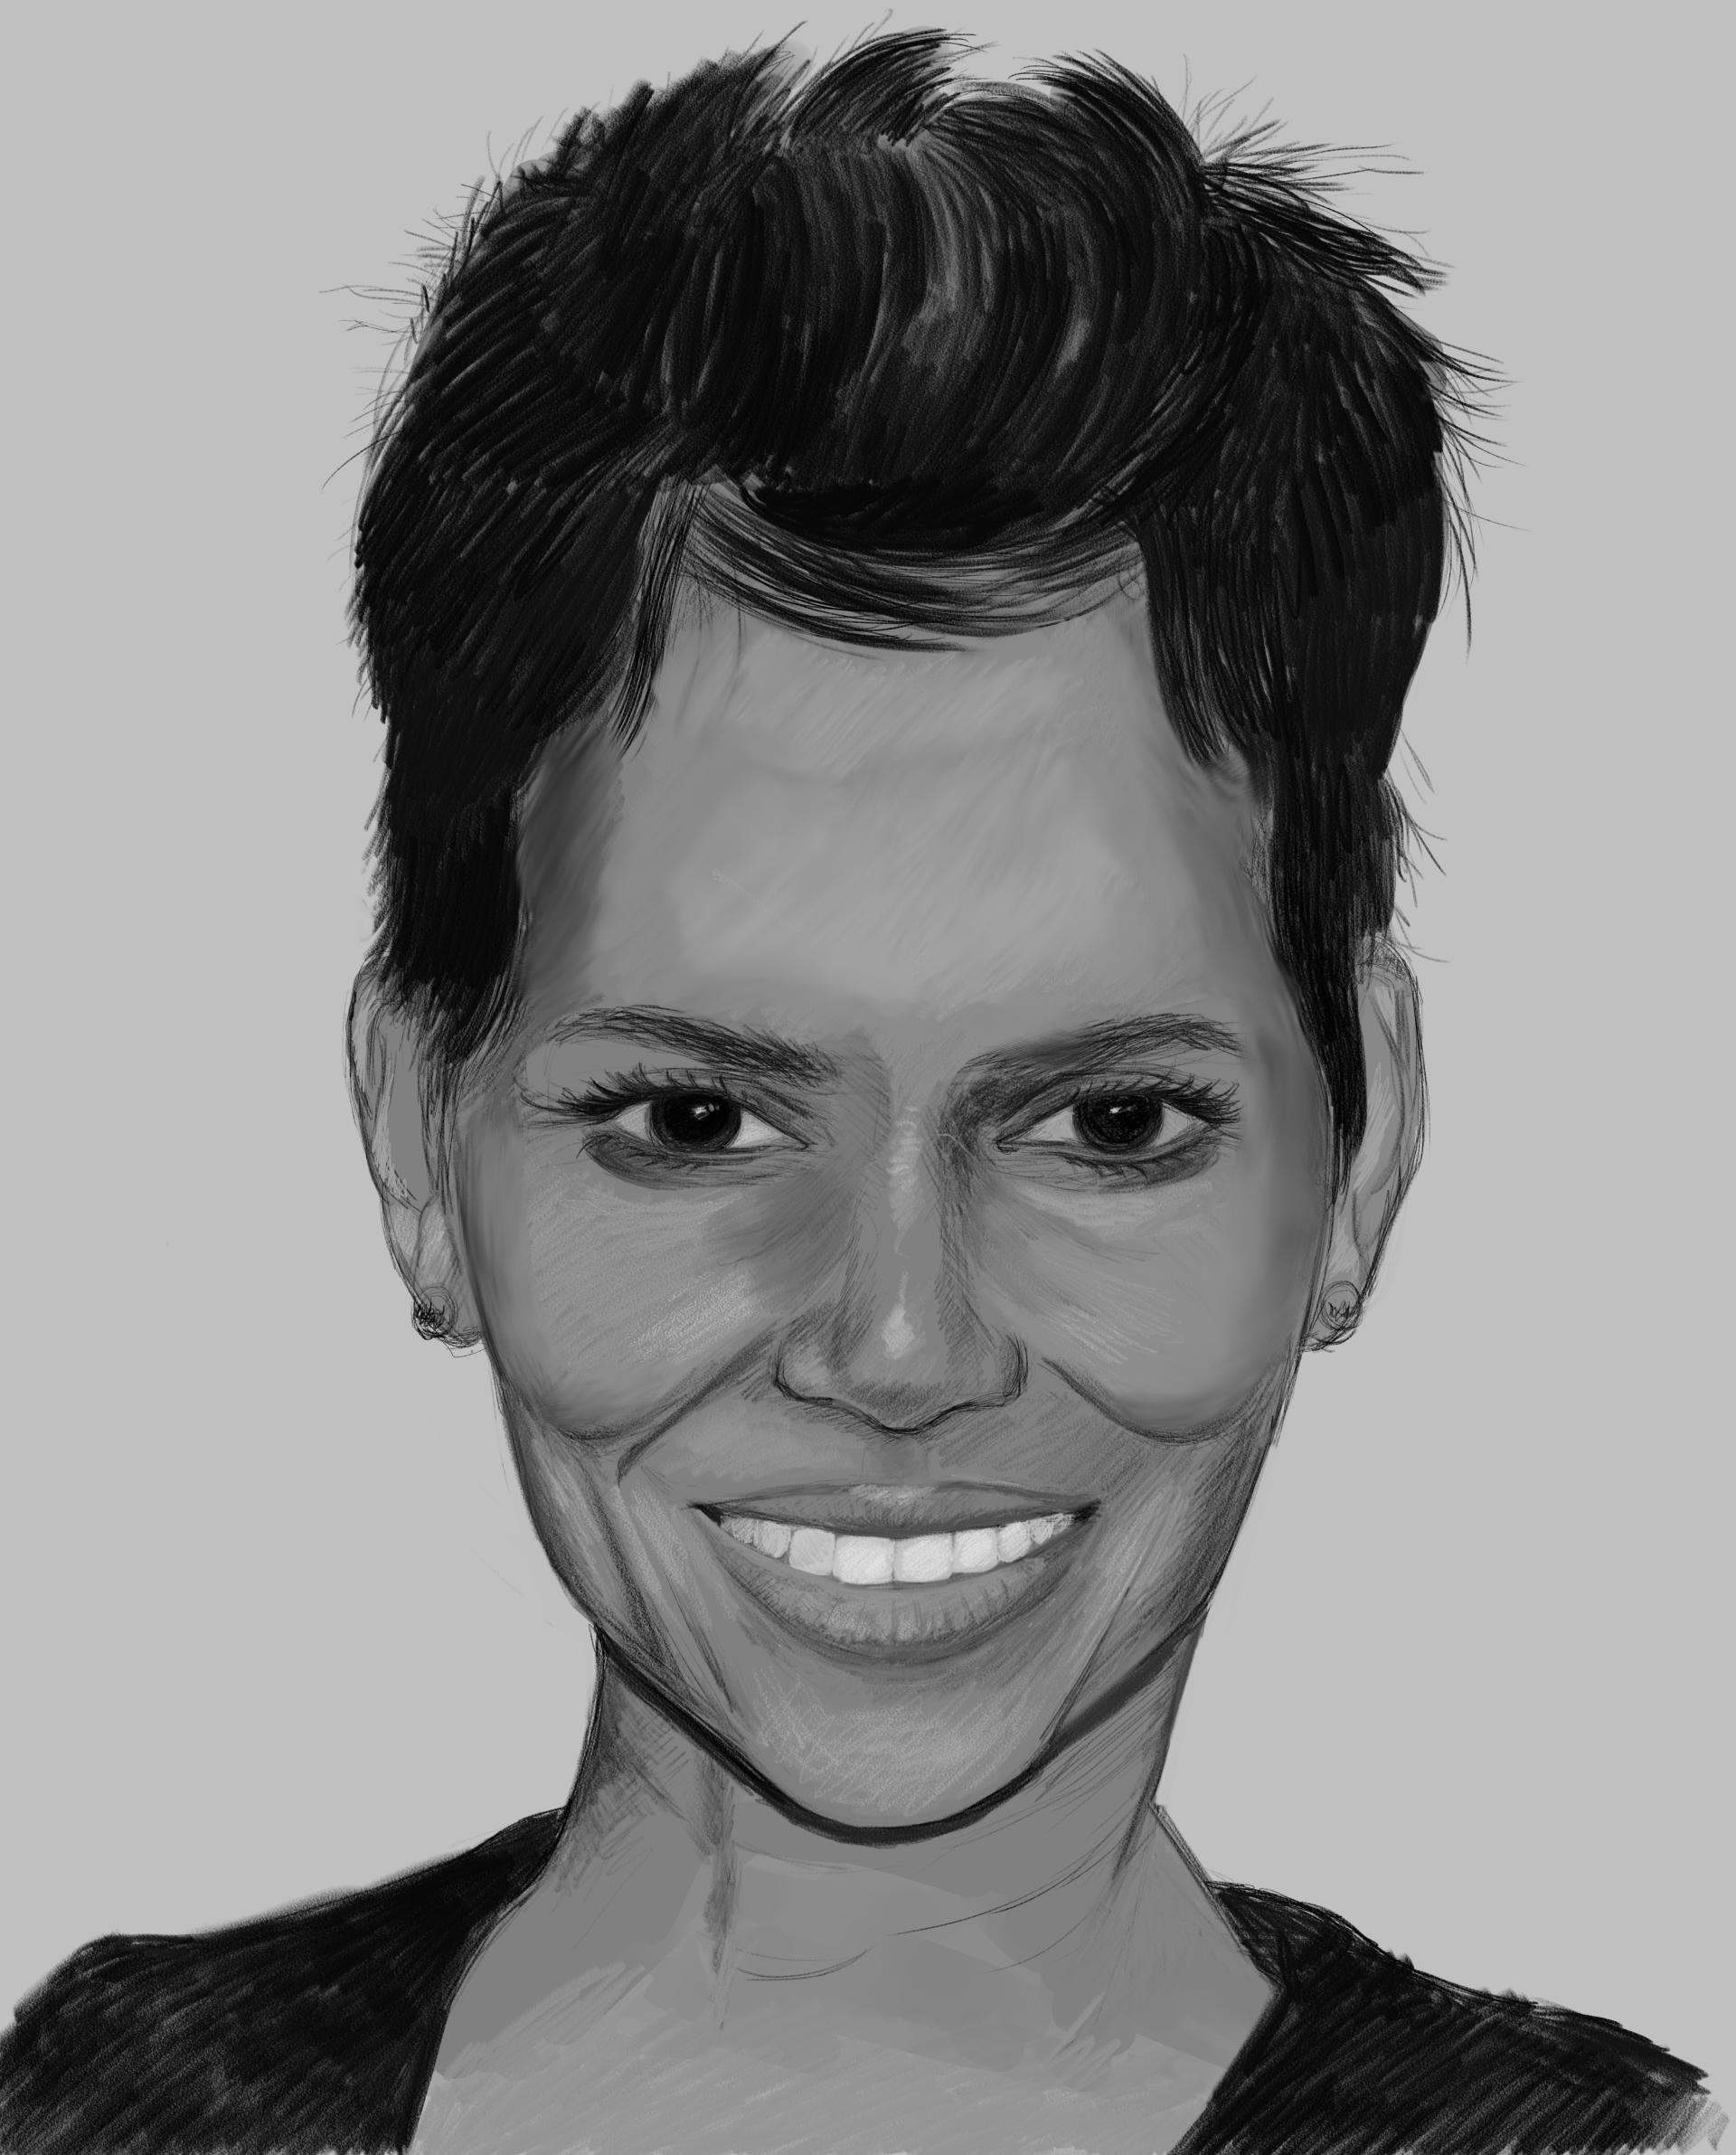 Mauro lira halle berry 002 1920wide